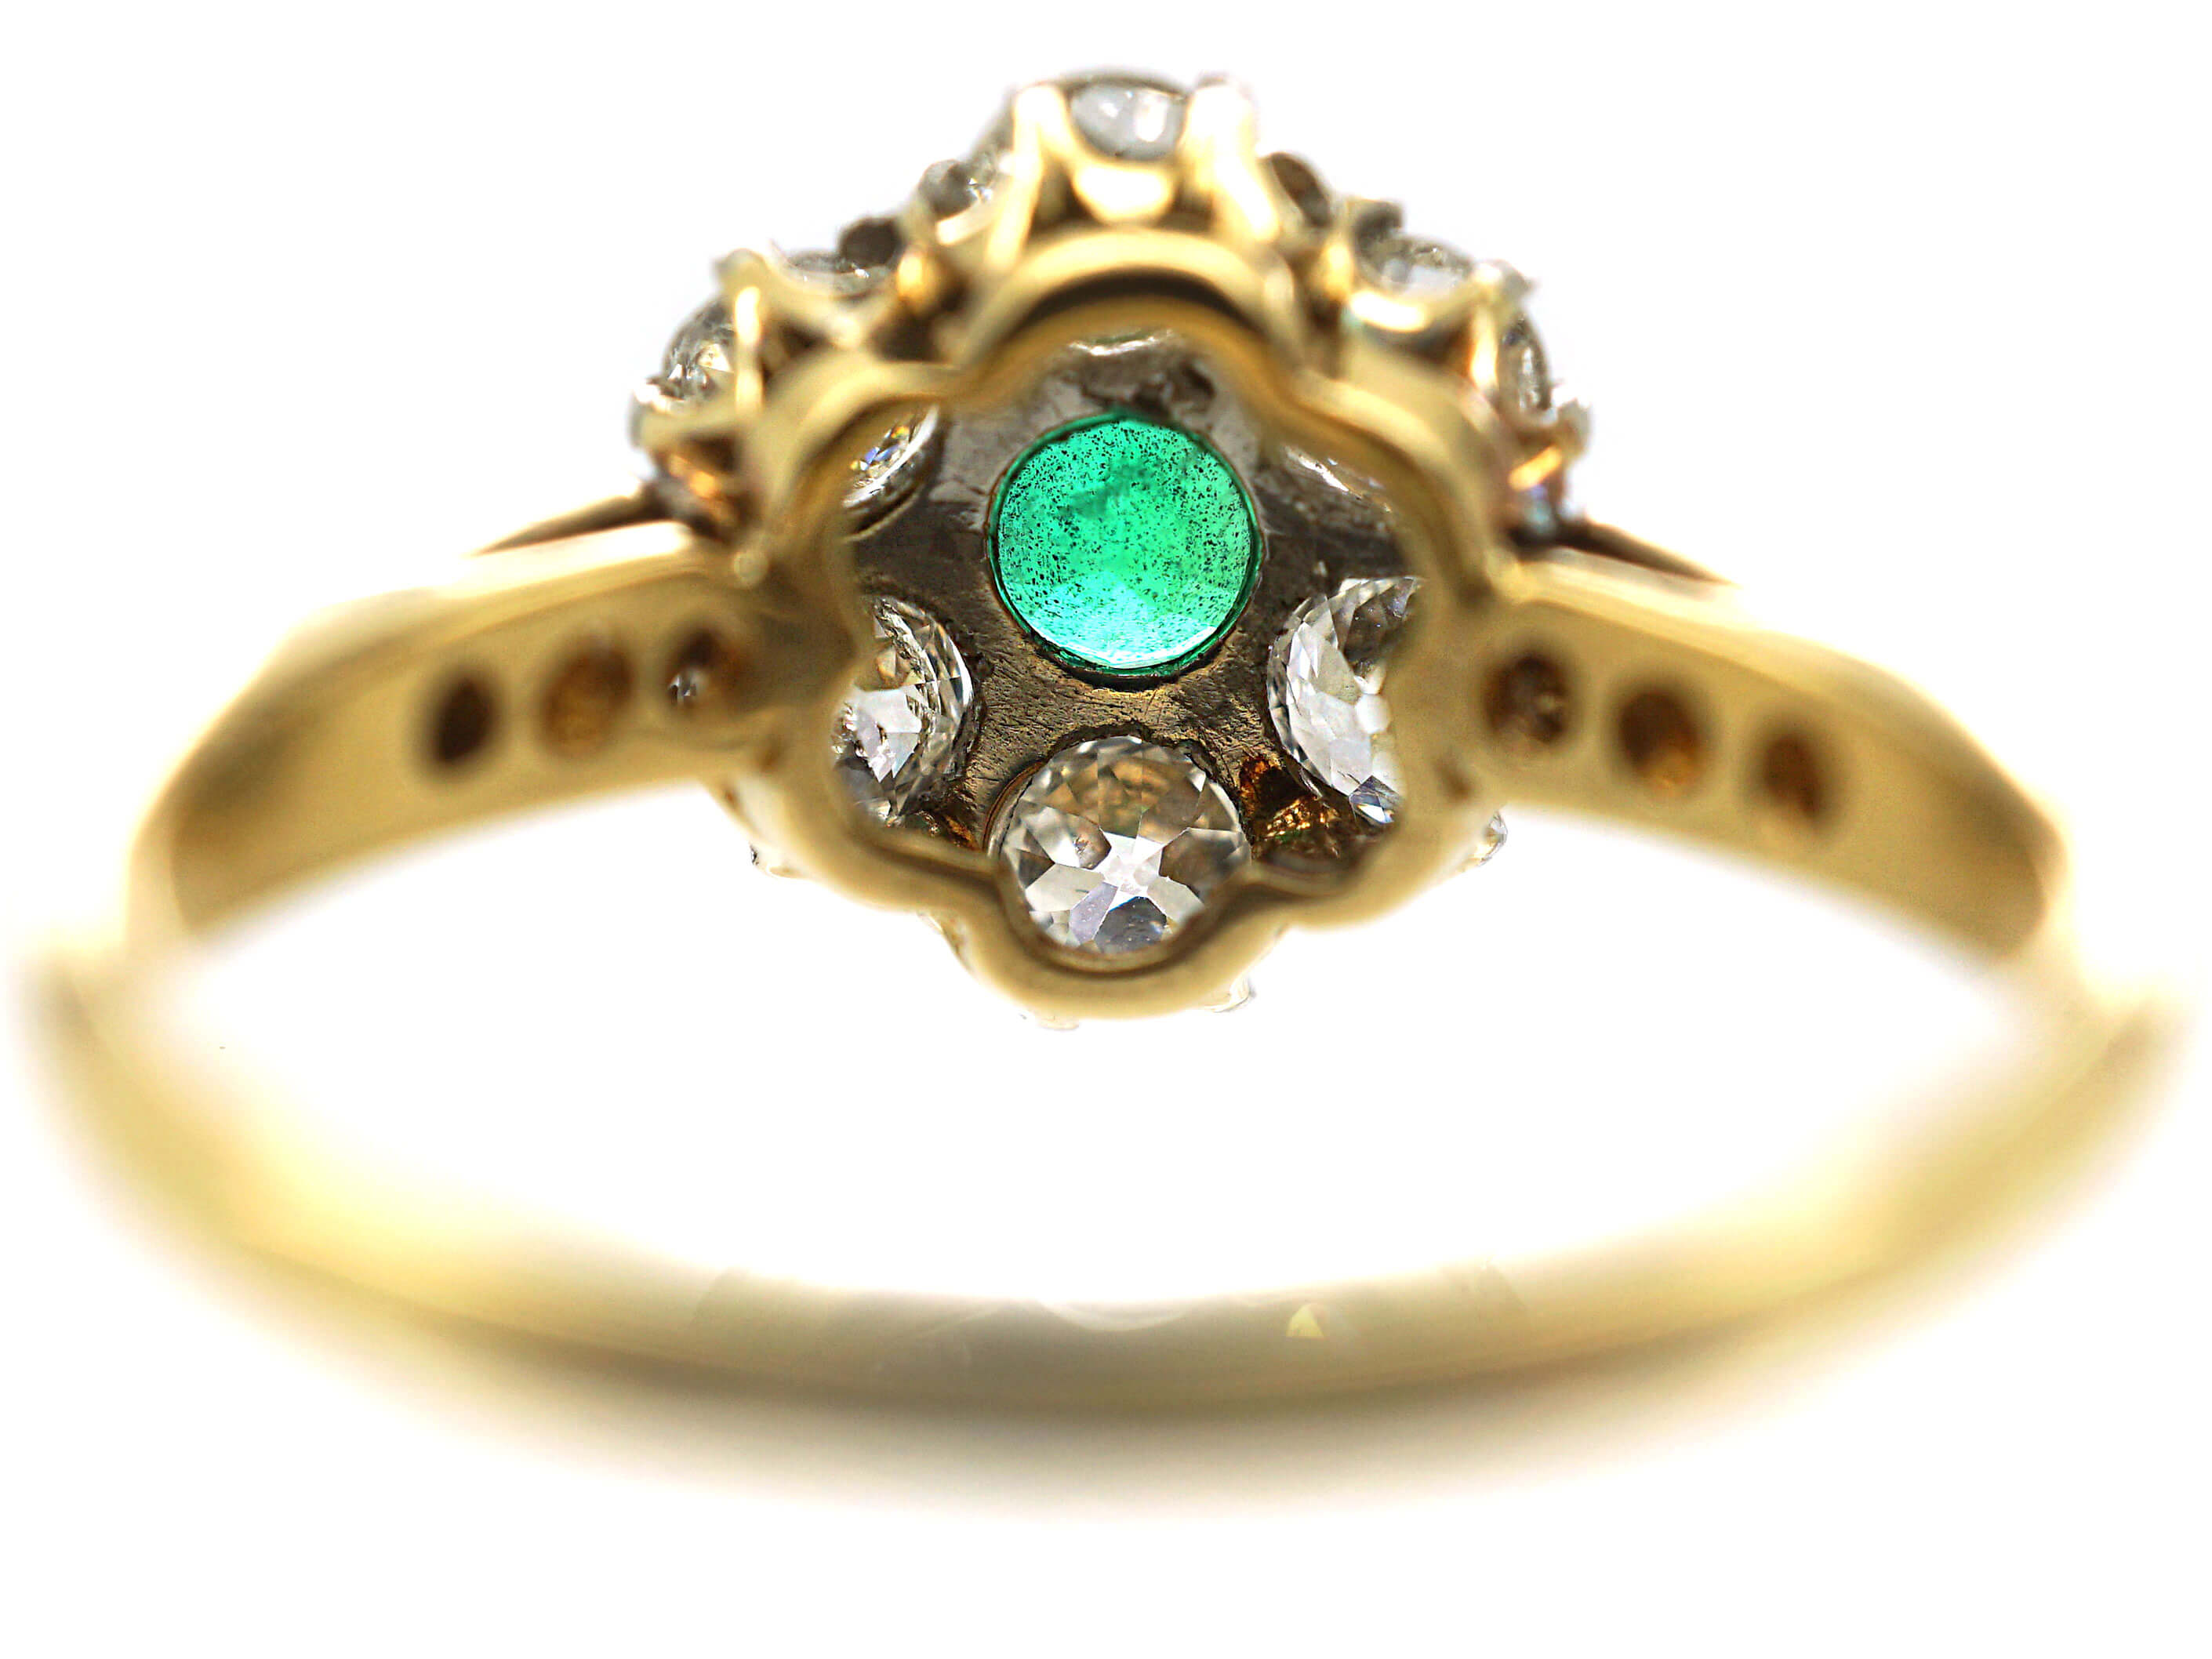 Edwardian 18ct Gold, Emerald & Diamond Cluster Ring with Diamond Set Shoulders